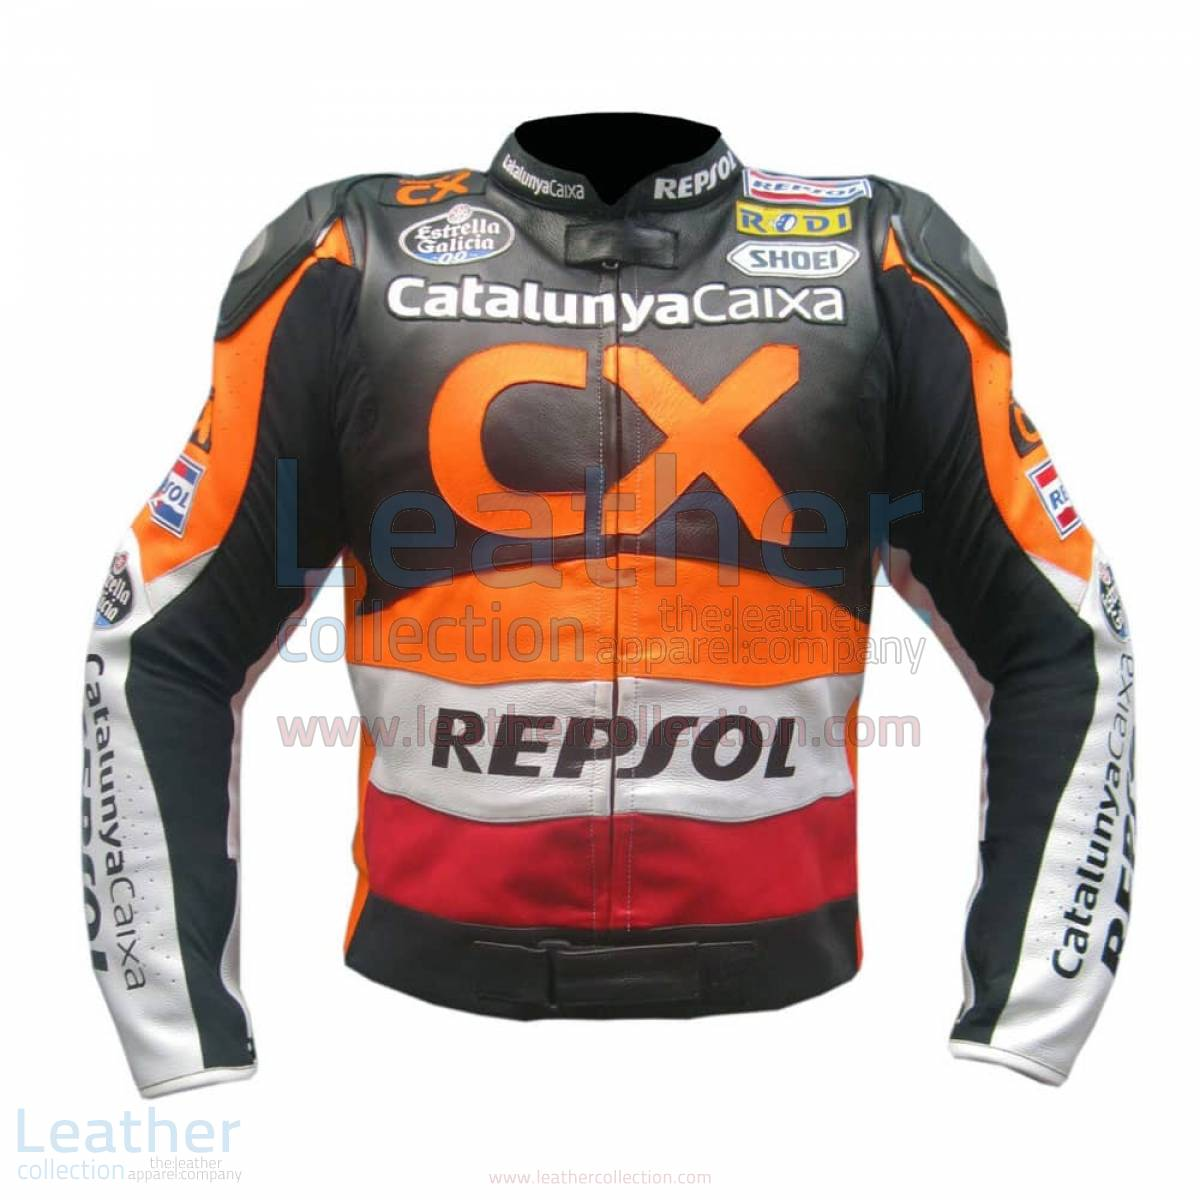 Repsol CX Leather Race Jacket –  Jacket